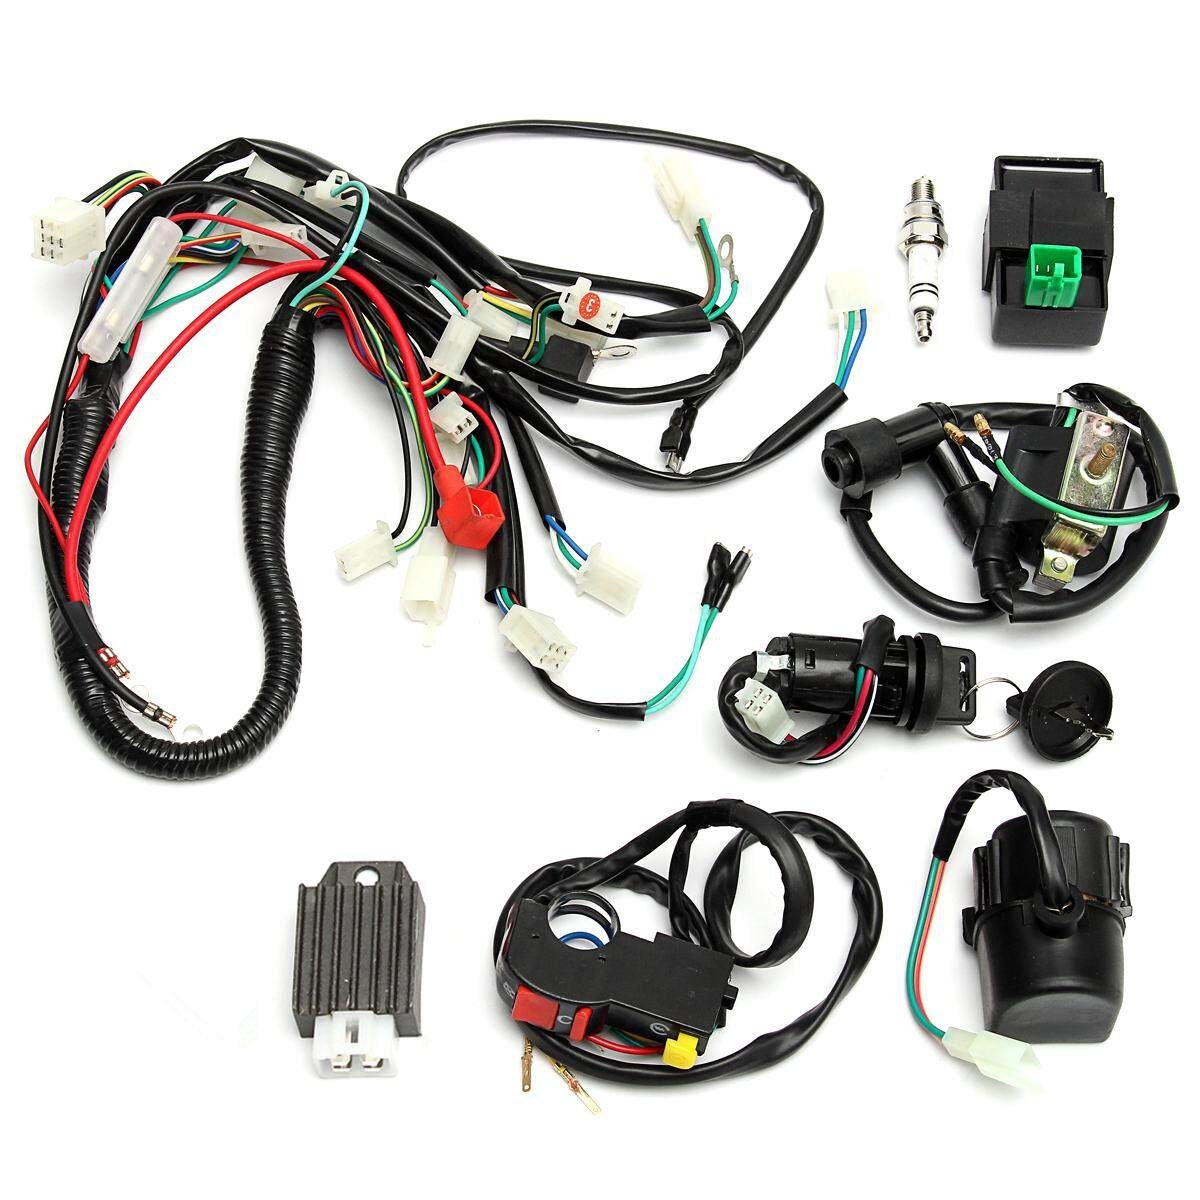 Automotive Wiring For Sale Harness Online Brands 2002 Honda Cr V Wire Full Loom Start Switch Kit Pit Bike Atv 4 Go Kart 50 110cc 125cc